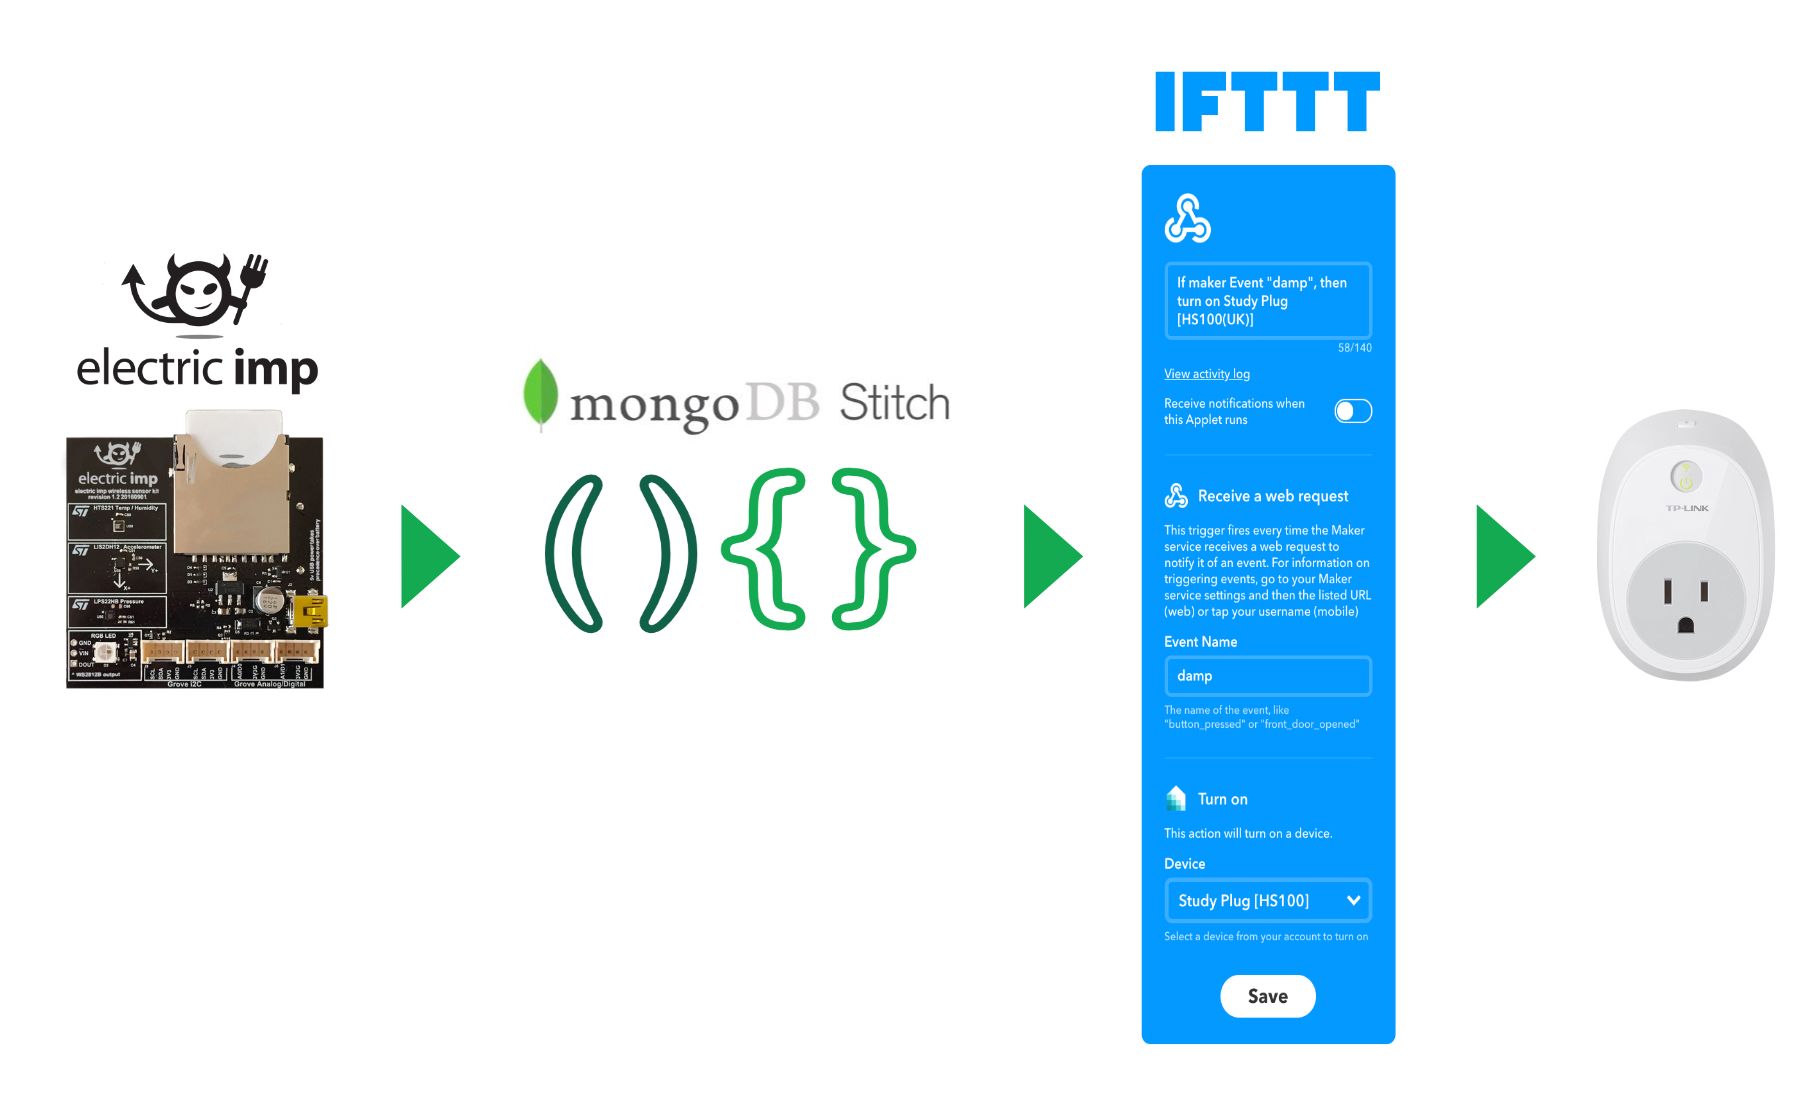 IFTTT Webhook to turn plug on